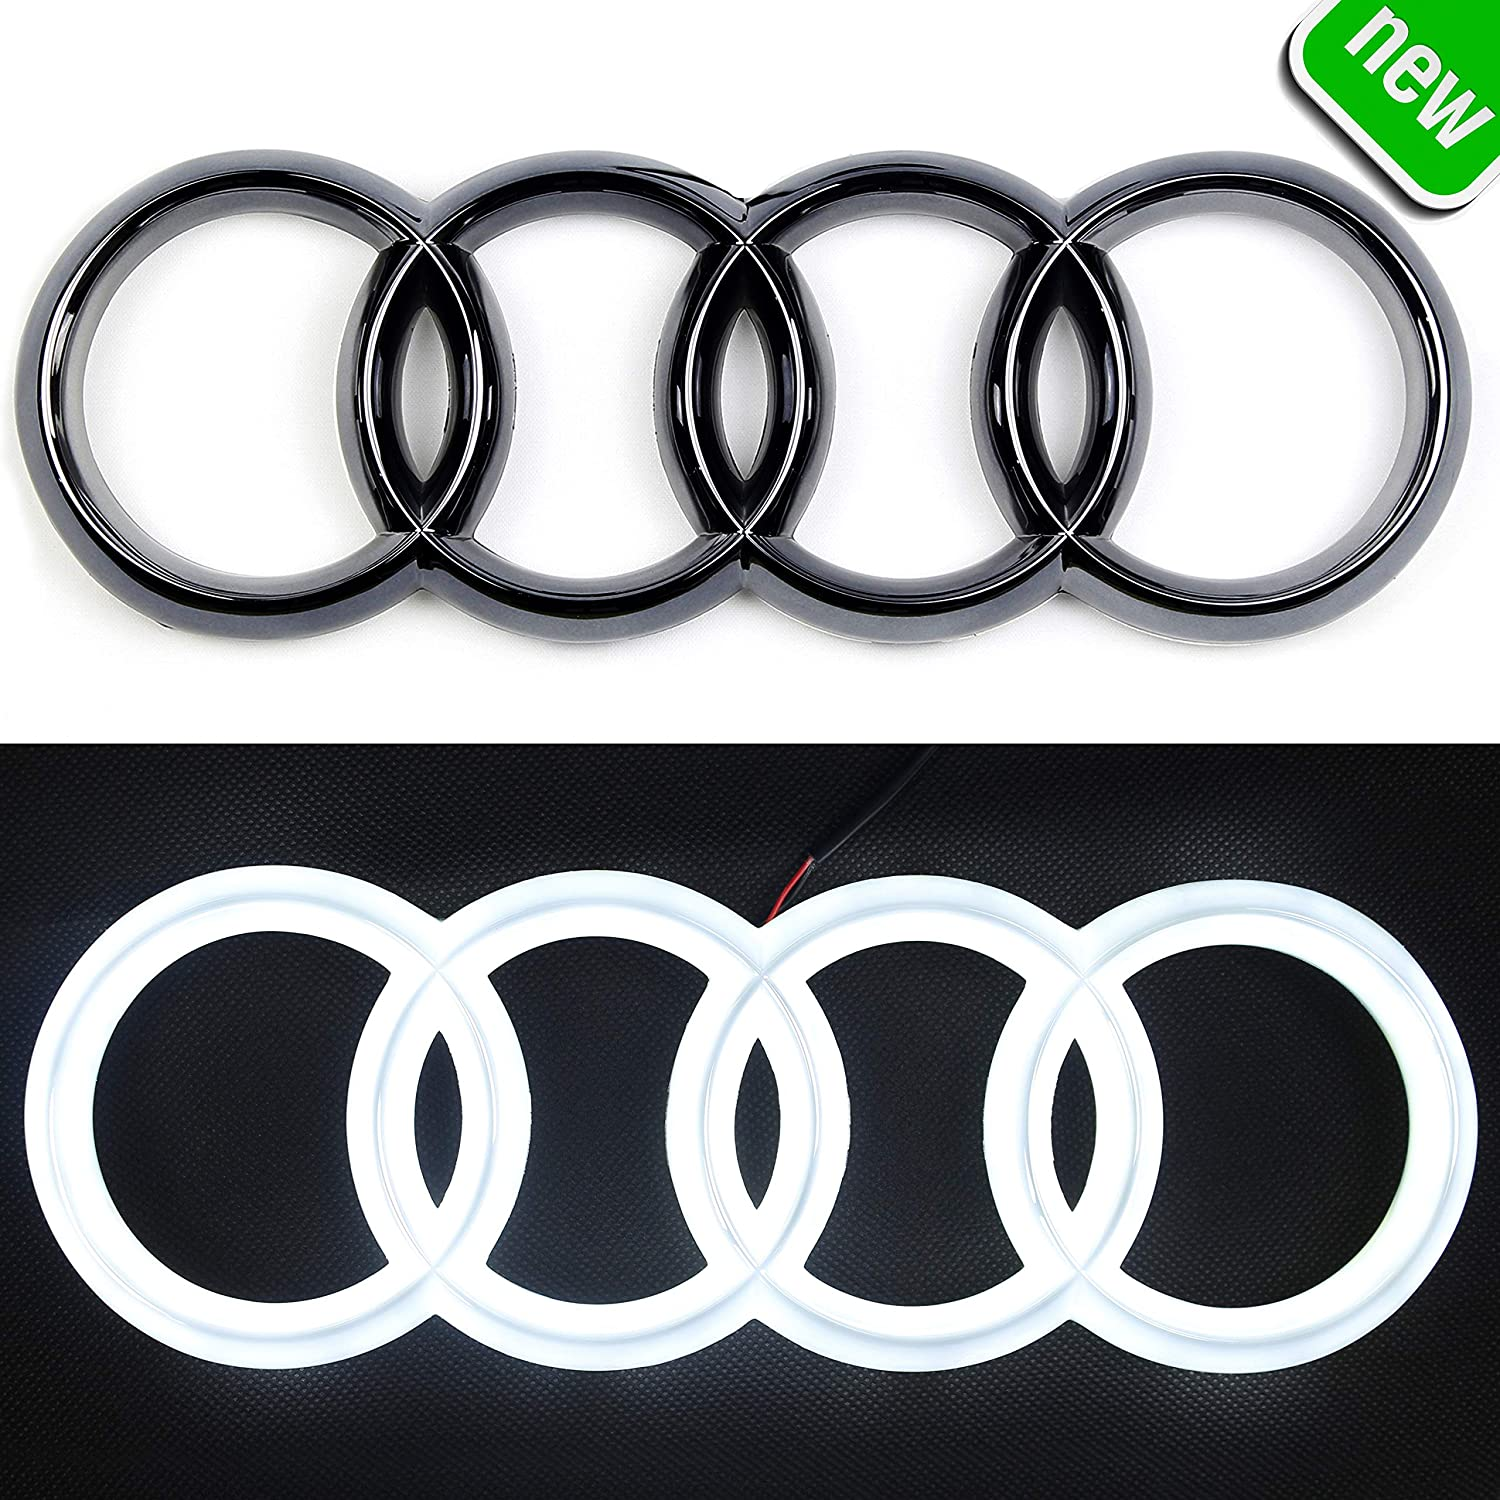 Lights Drl Daytime Running Lights White -Drive Front Car Grill Badge 285 mm Black Auto Illuminated Logo Jetstyle LED Emblem Glowing Rings